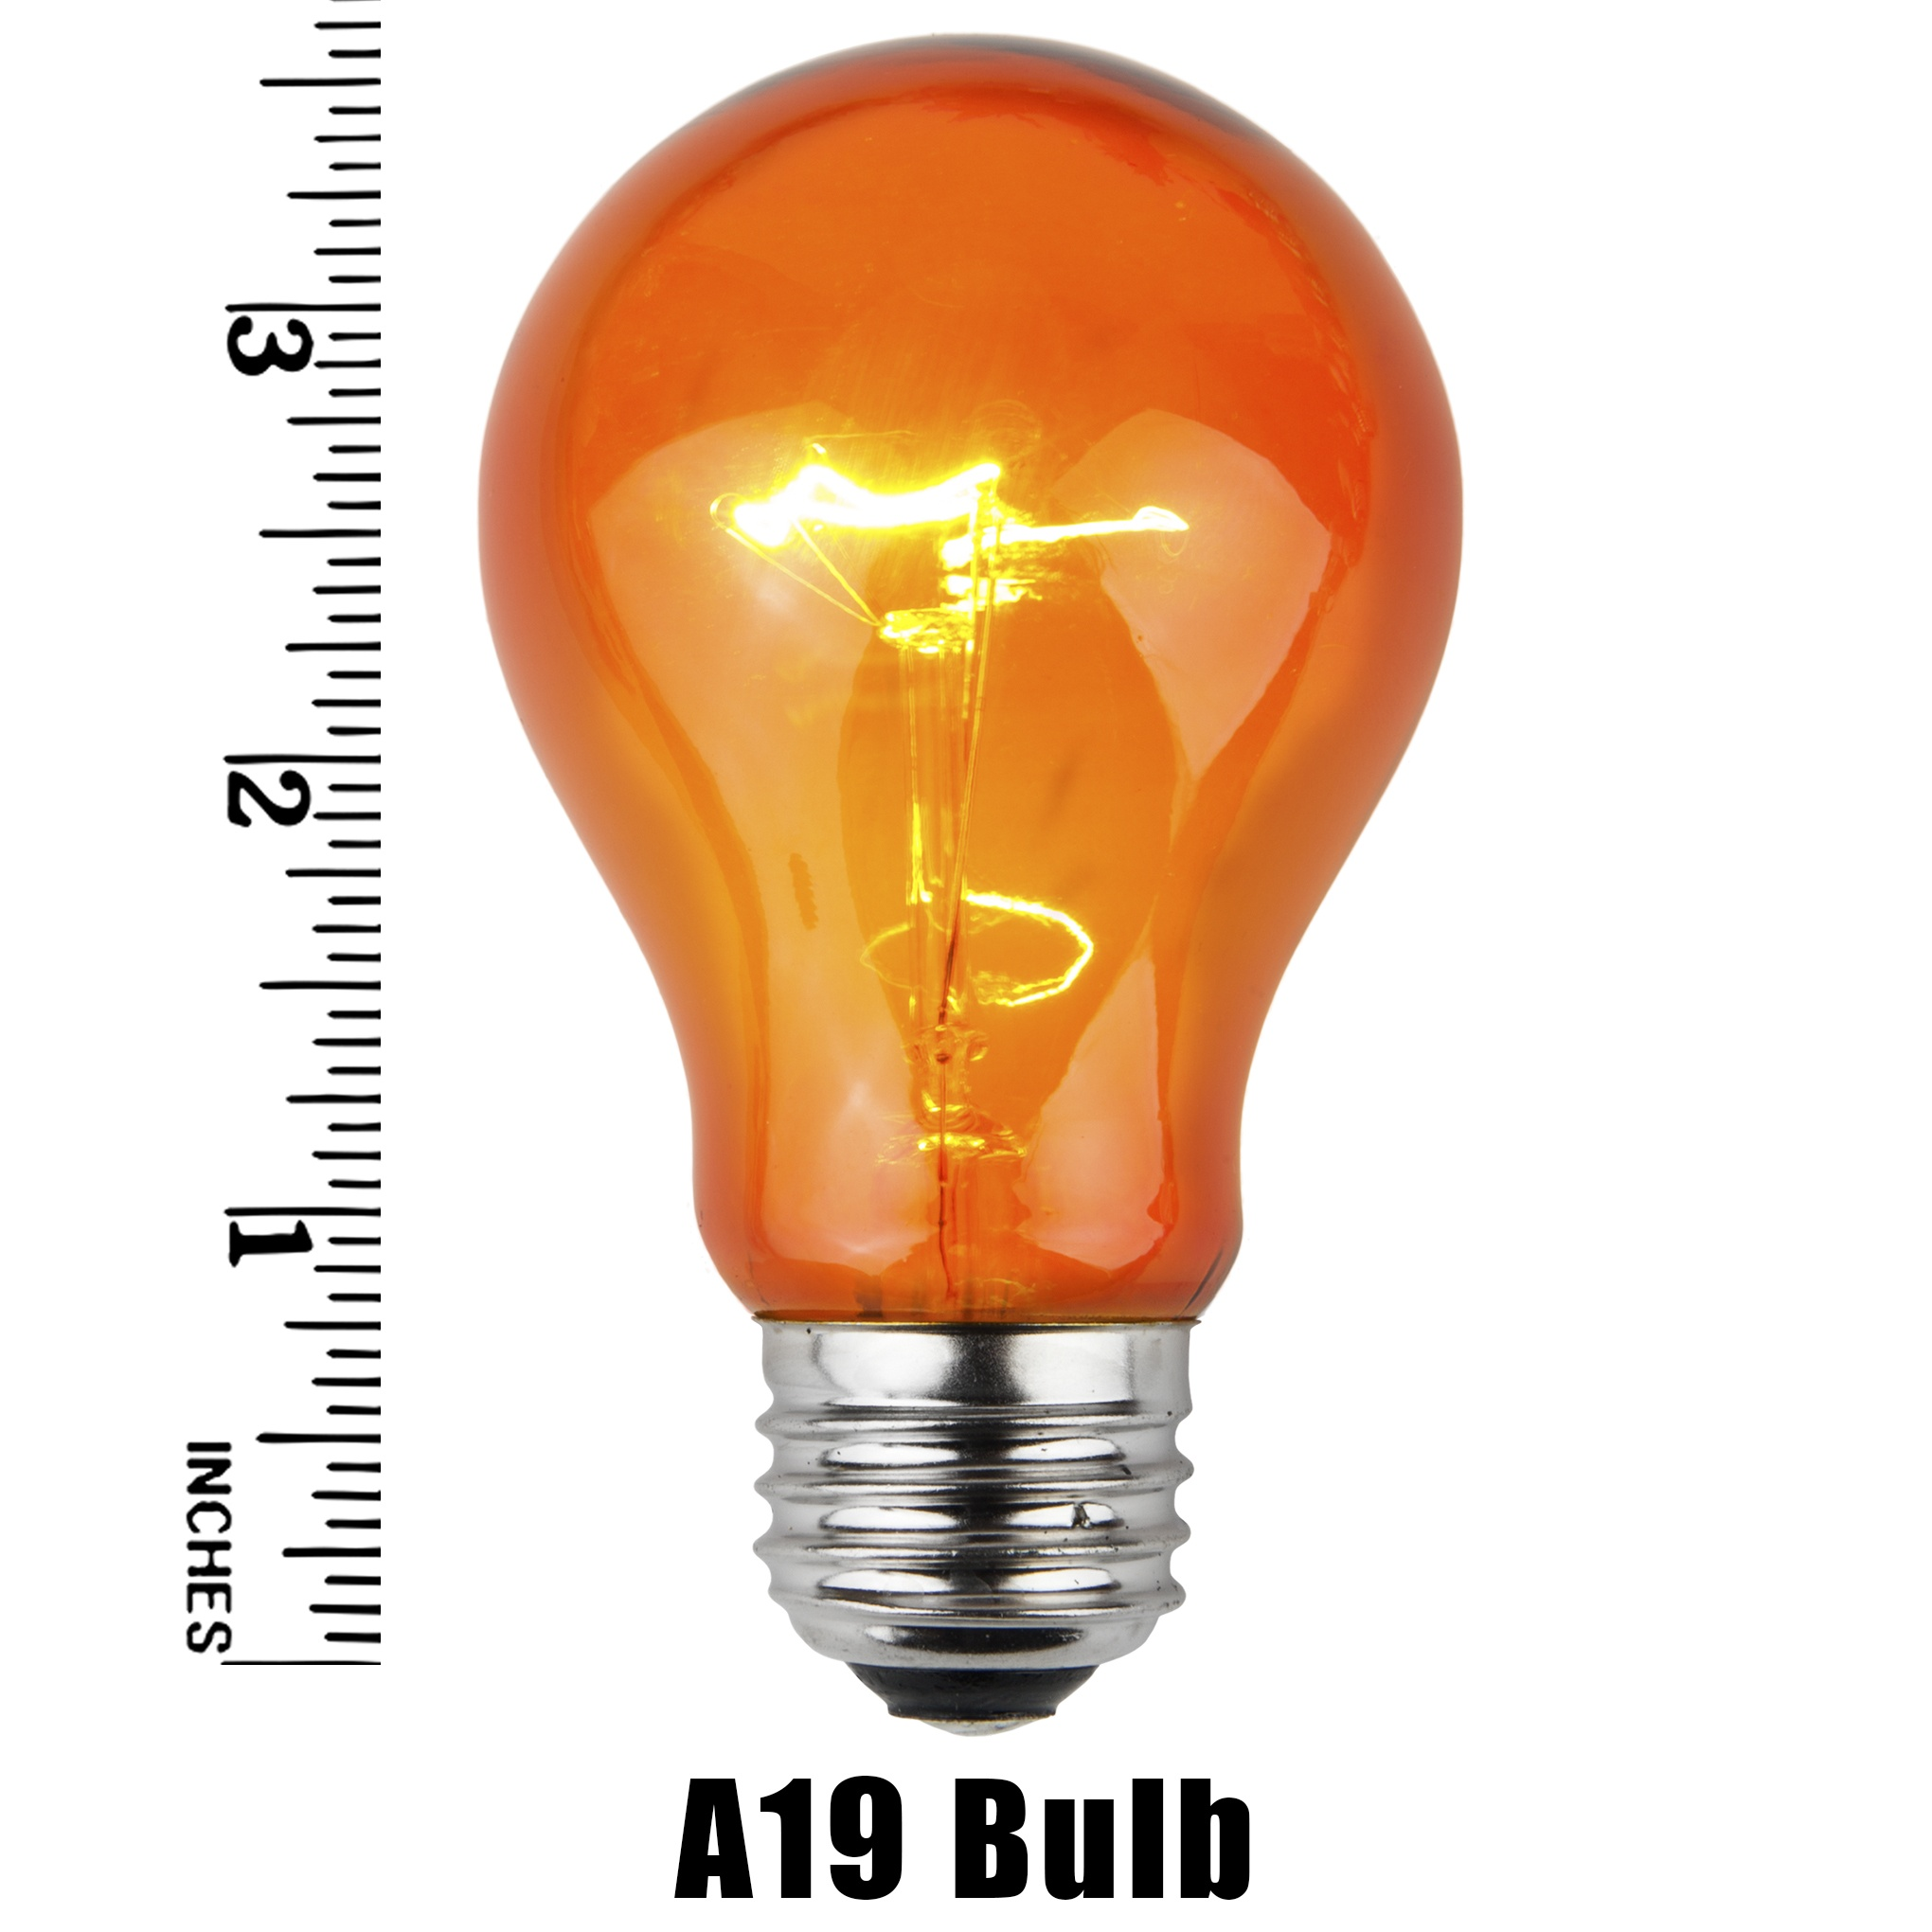 A19 Amber Transparent Incandescent Bulb Measurement